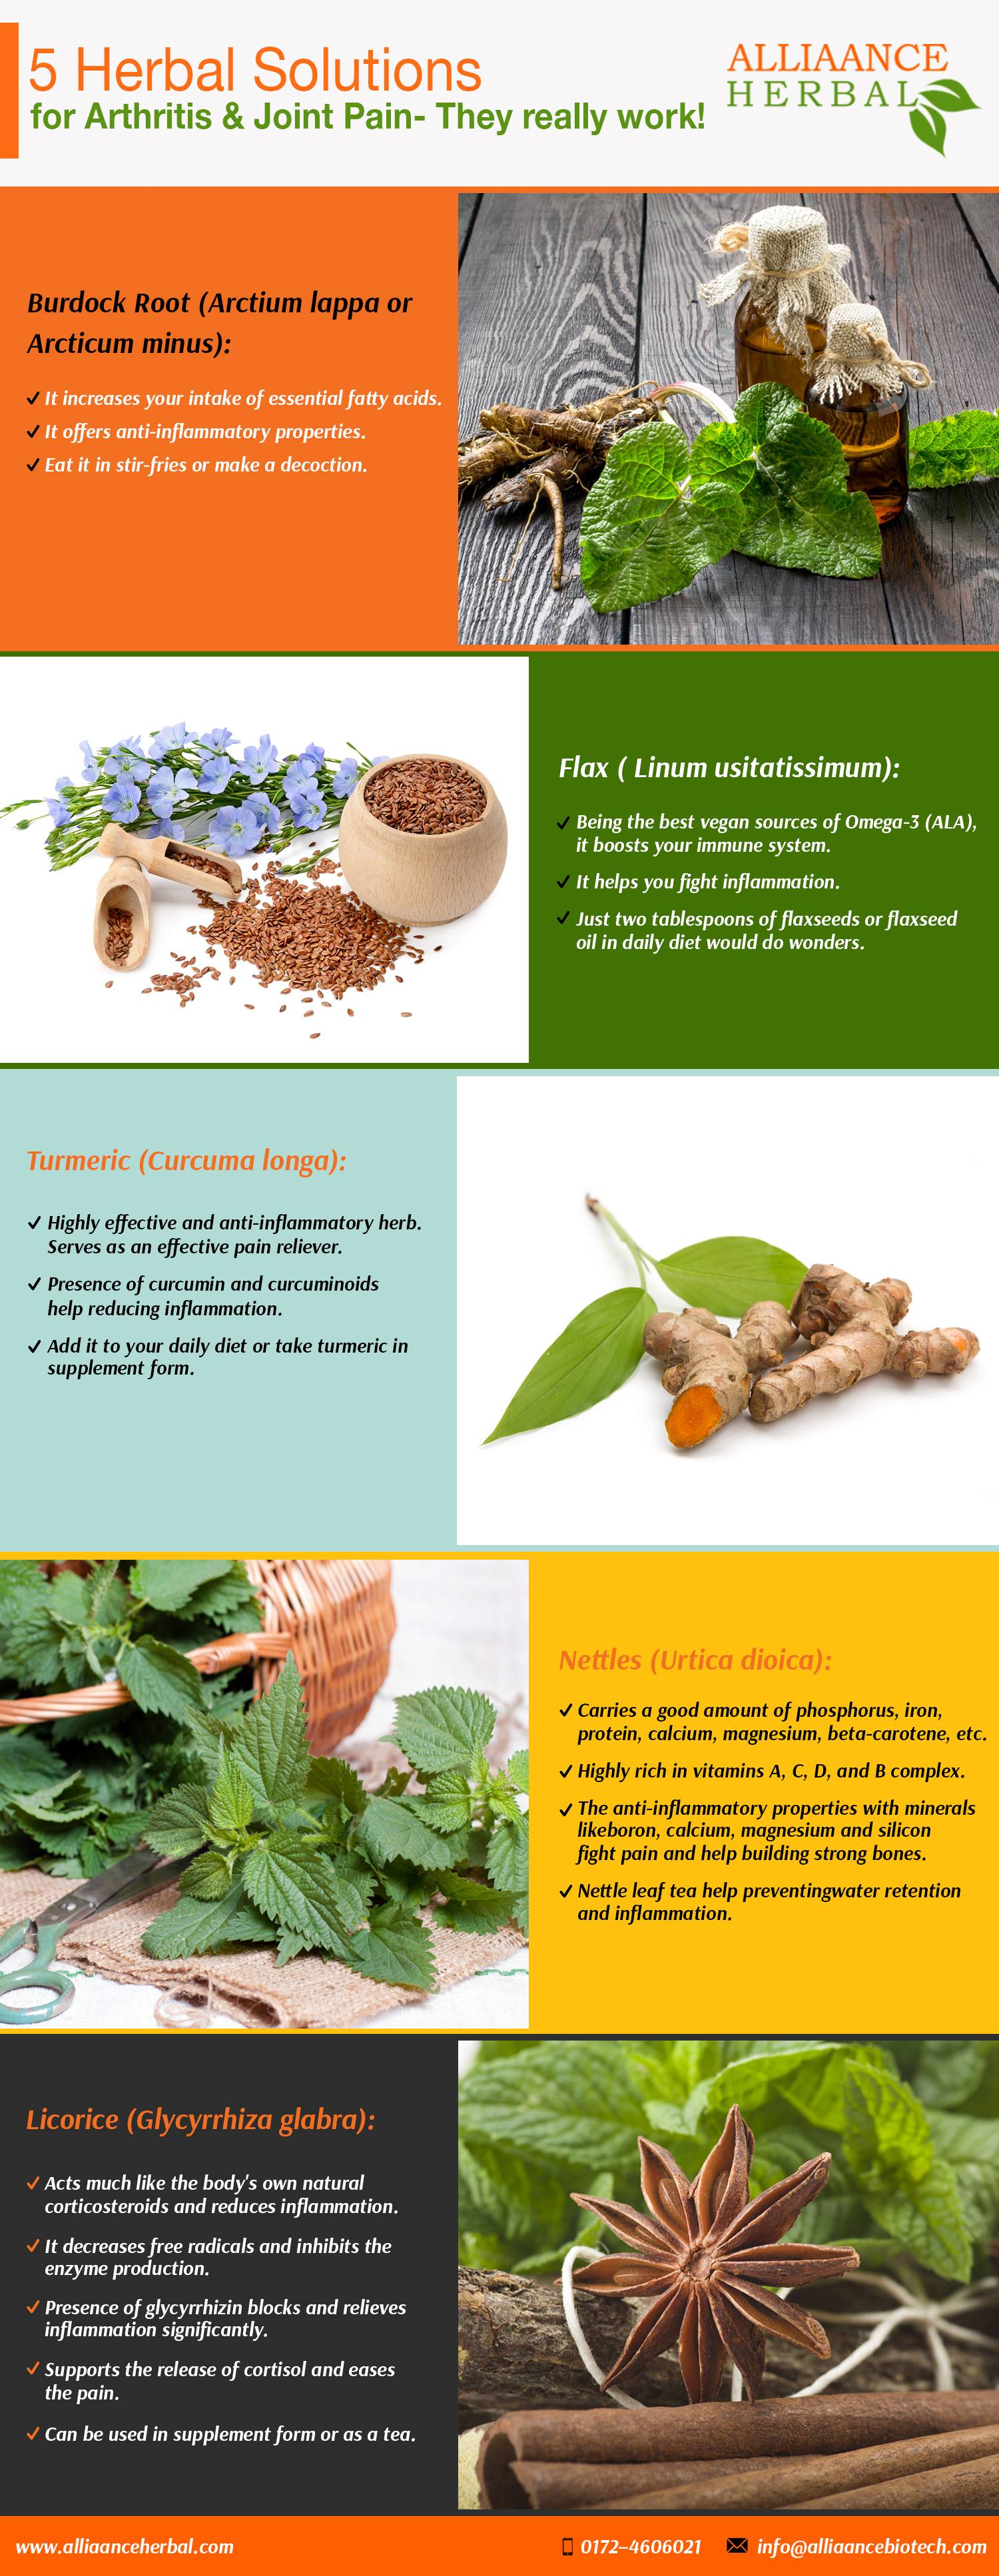 Herbal Solutions for Arthritis & Joint Pain